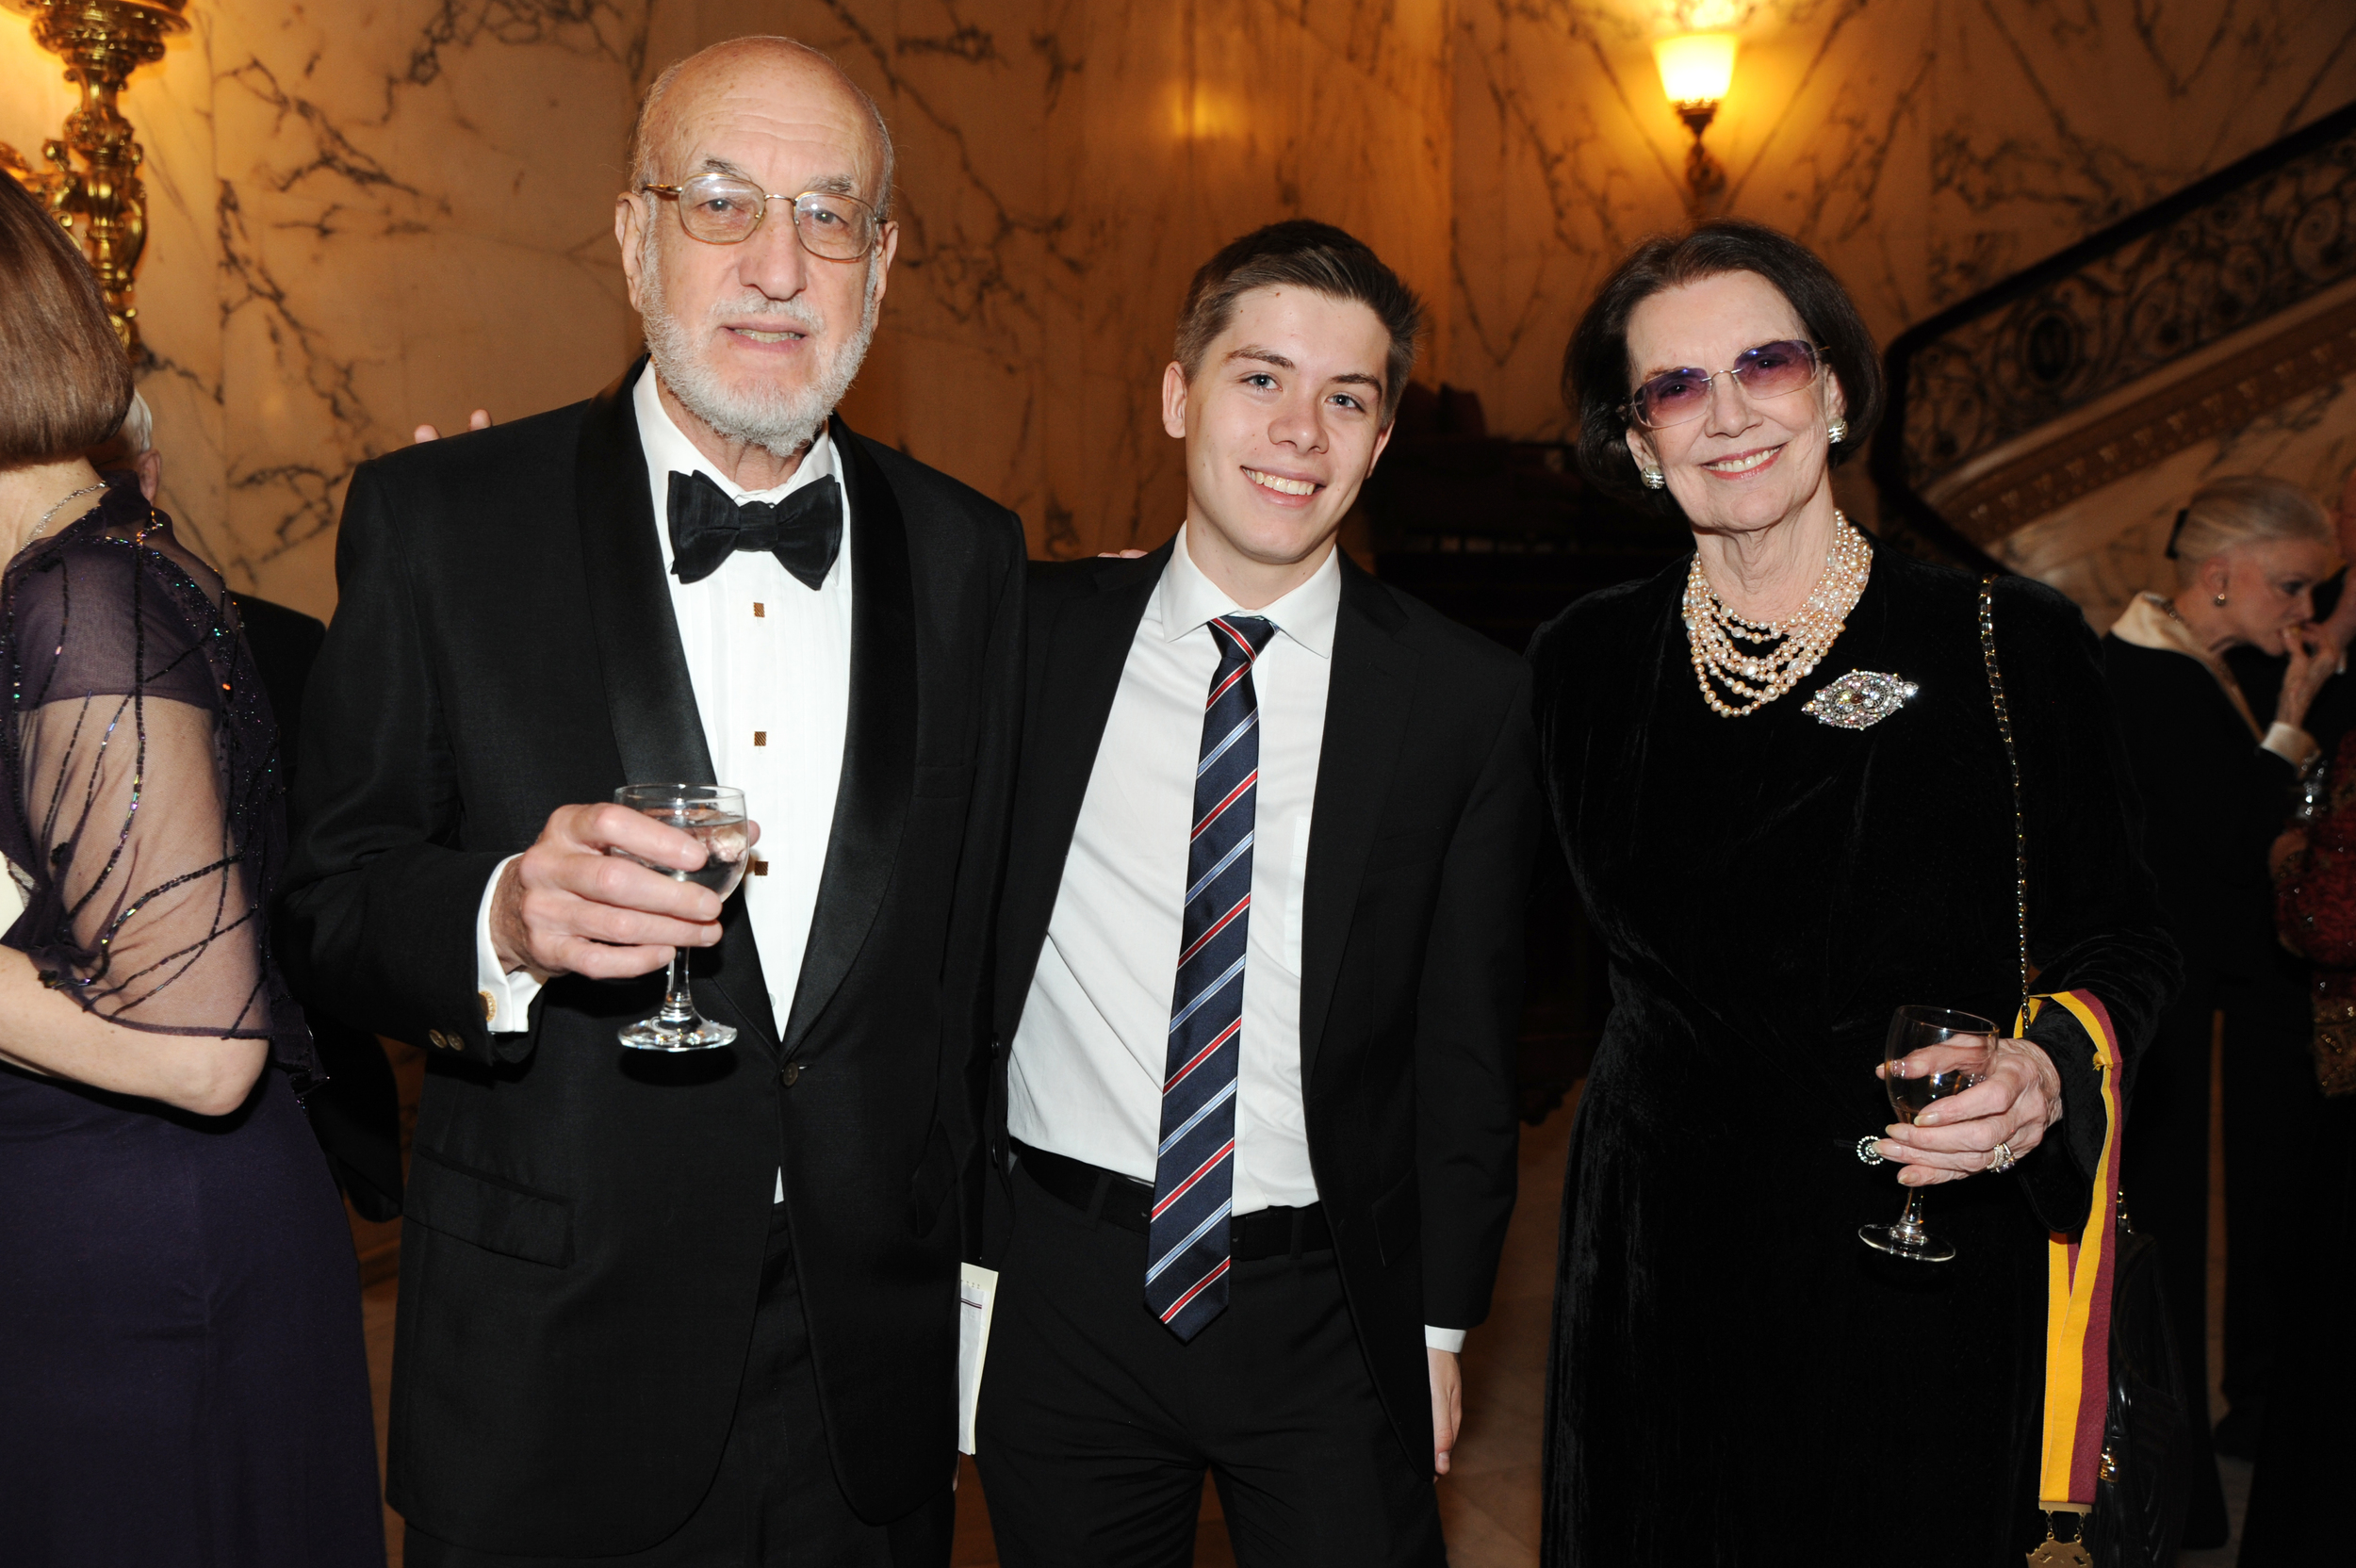 DSC_3738 - Bill Greenspan,  NES Scholar Maxwell Liebeskind, Harvard University Class of 2017, Connie Greenspan (2).JPG